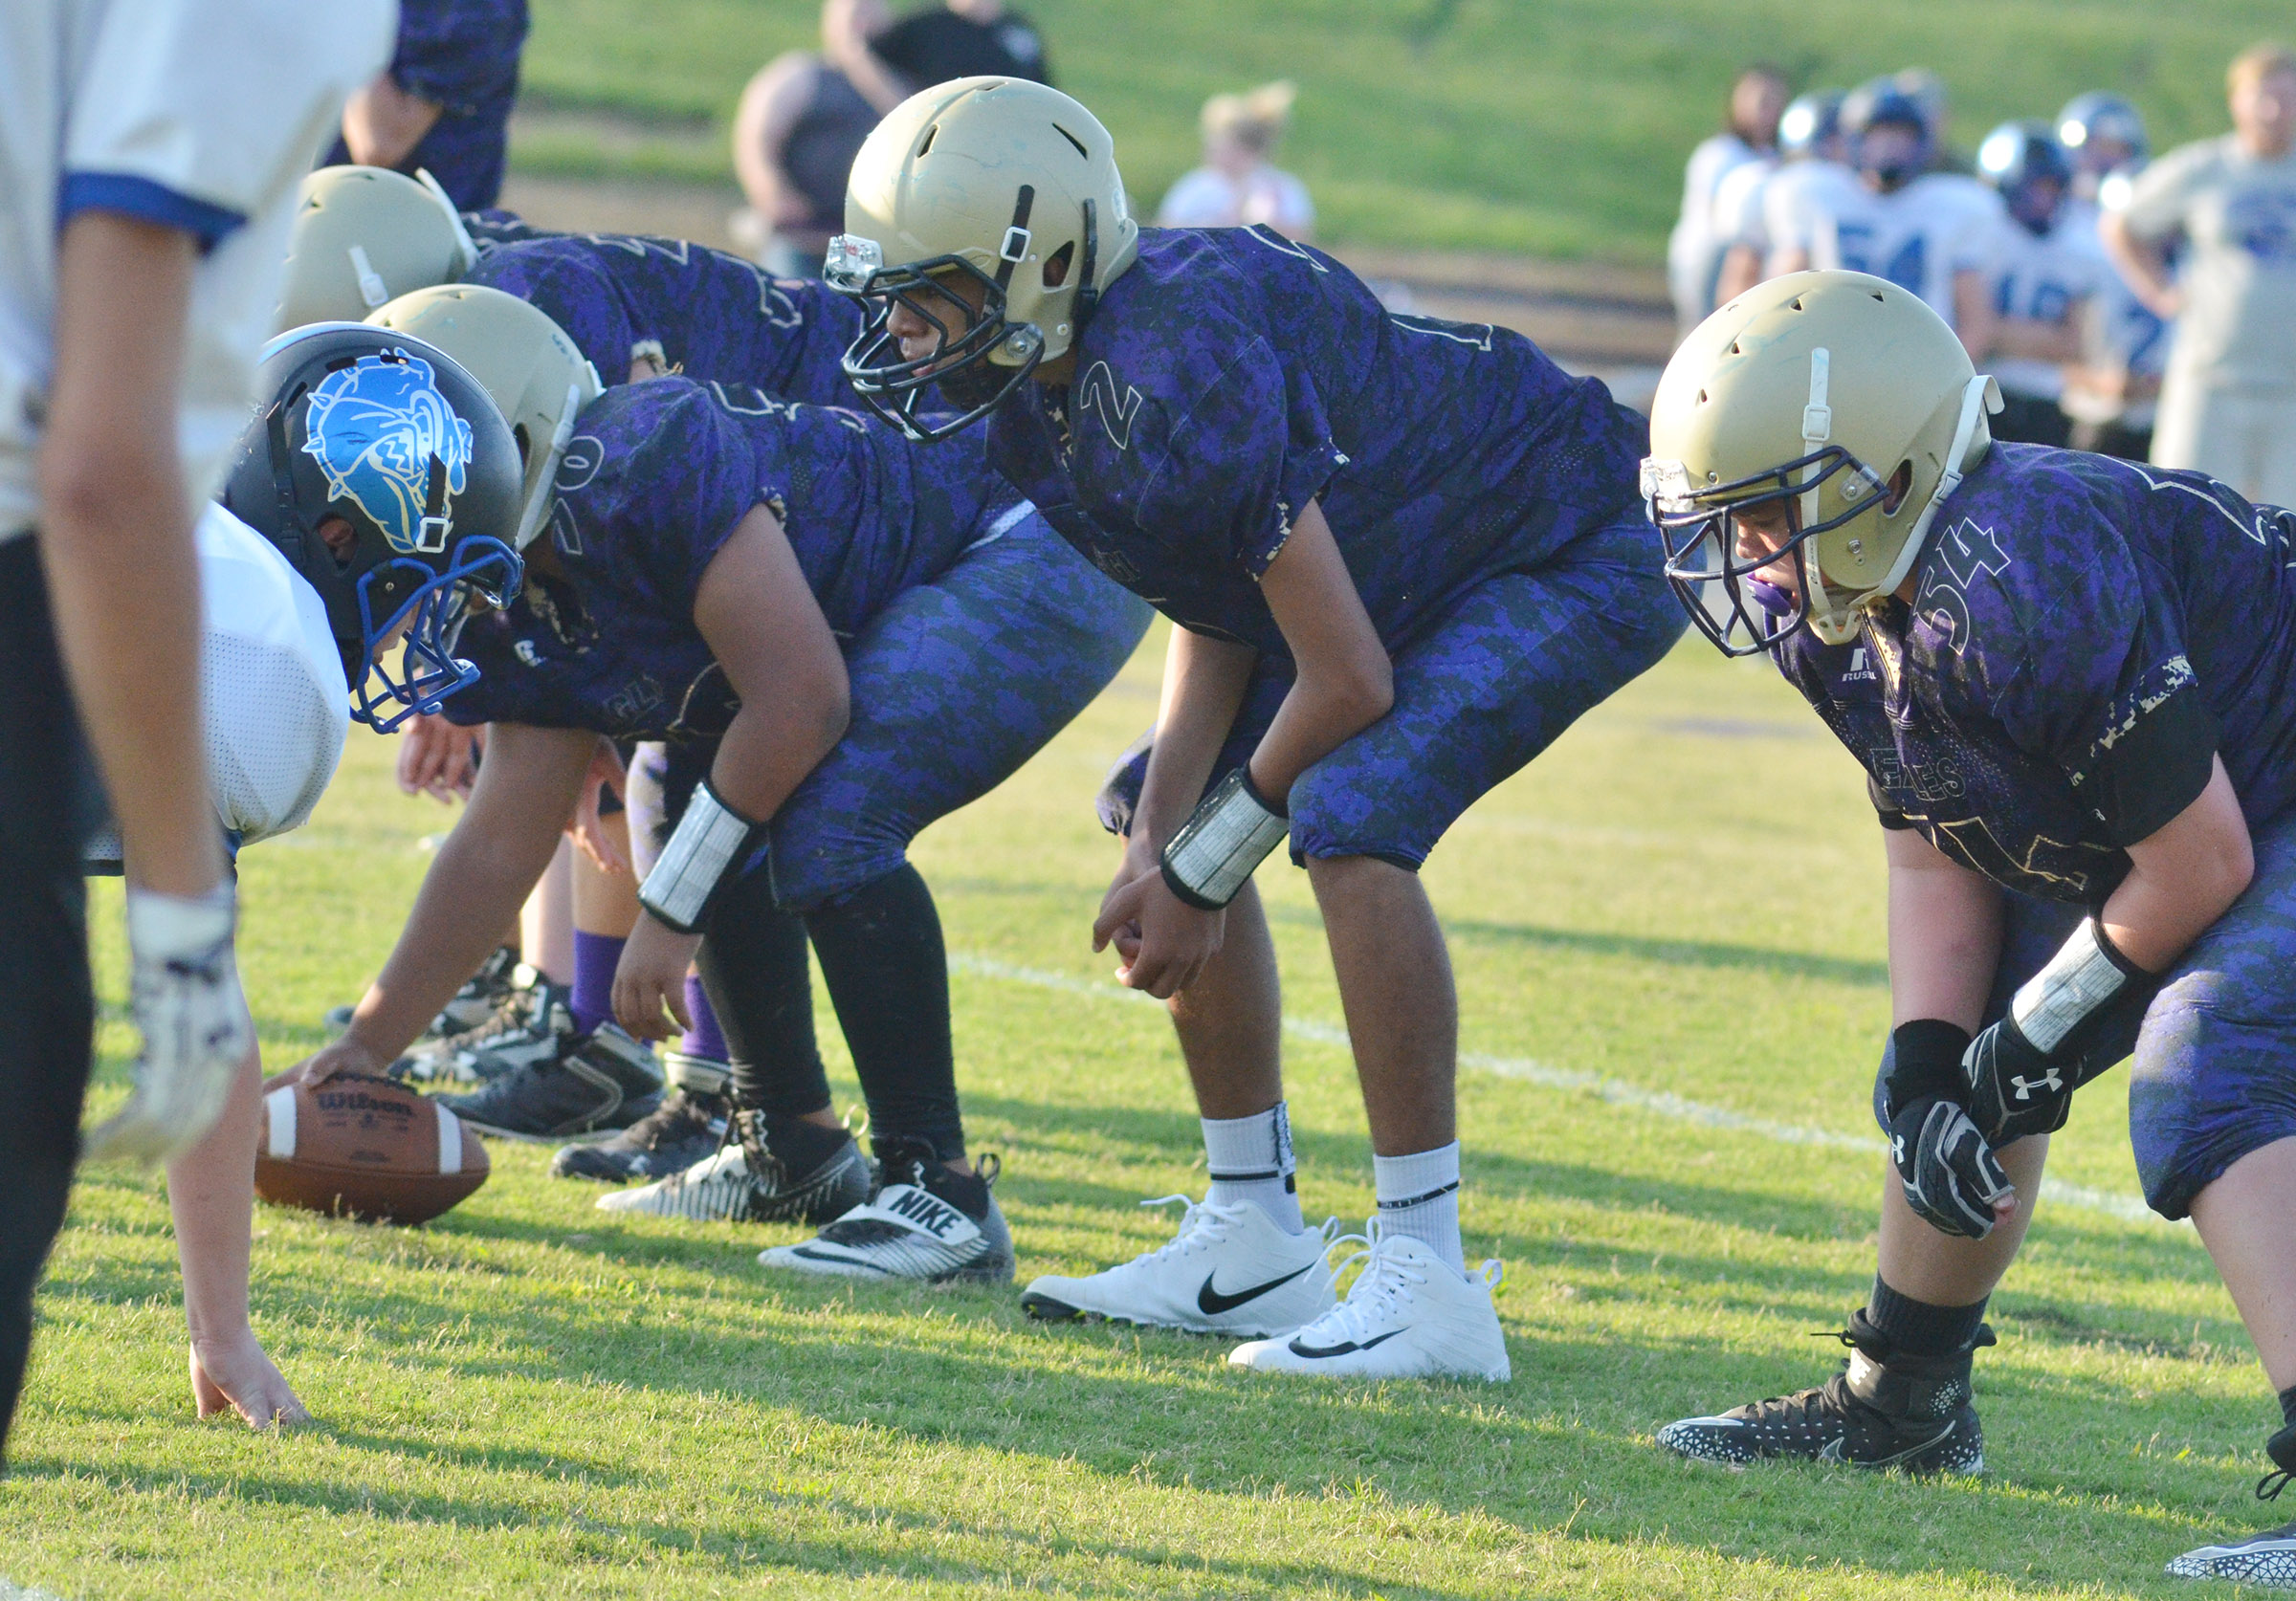 CMS eighth-grader Adrien Smith, center, and seventh-grader Hayden Jones get ready to block.